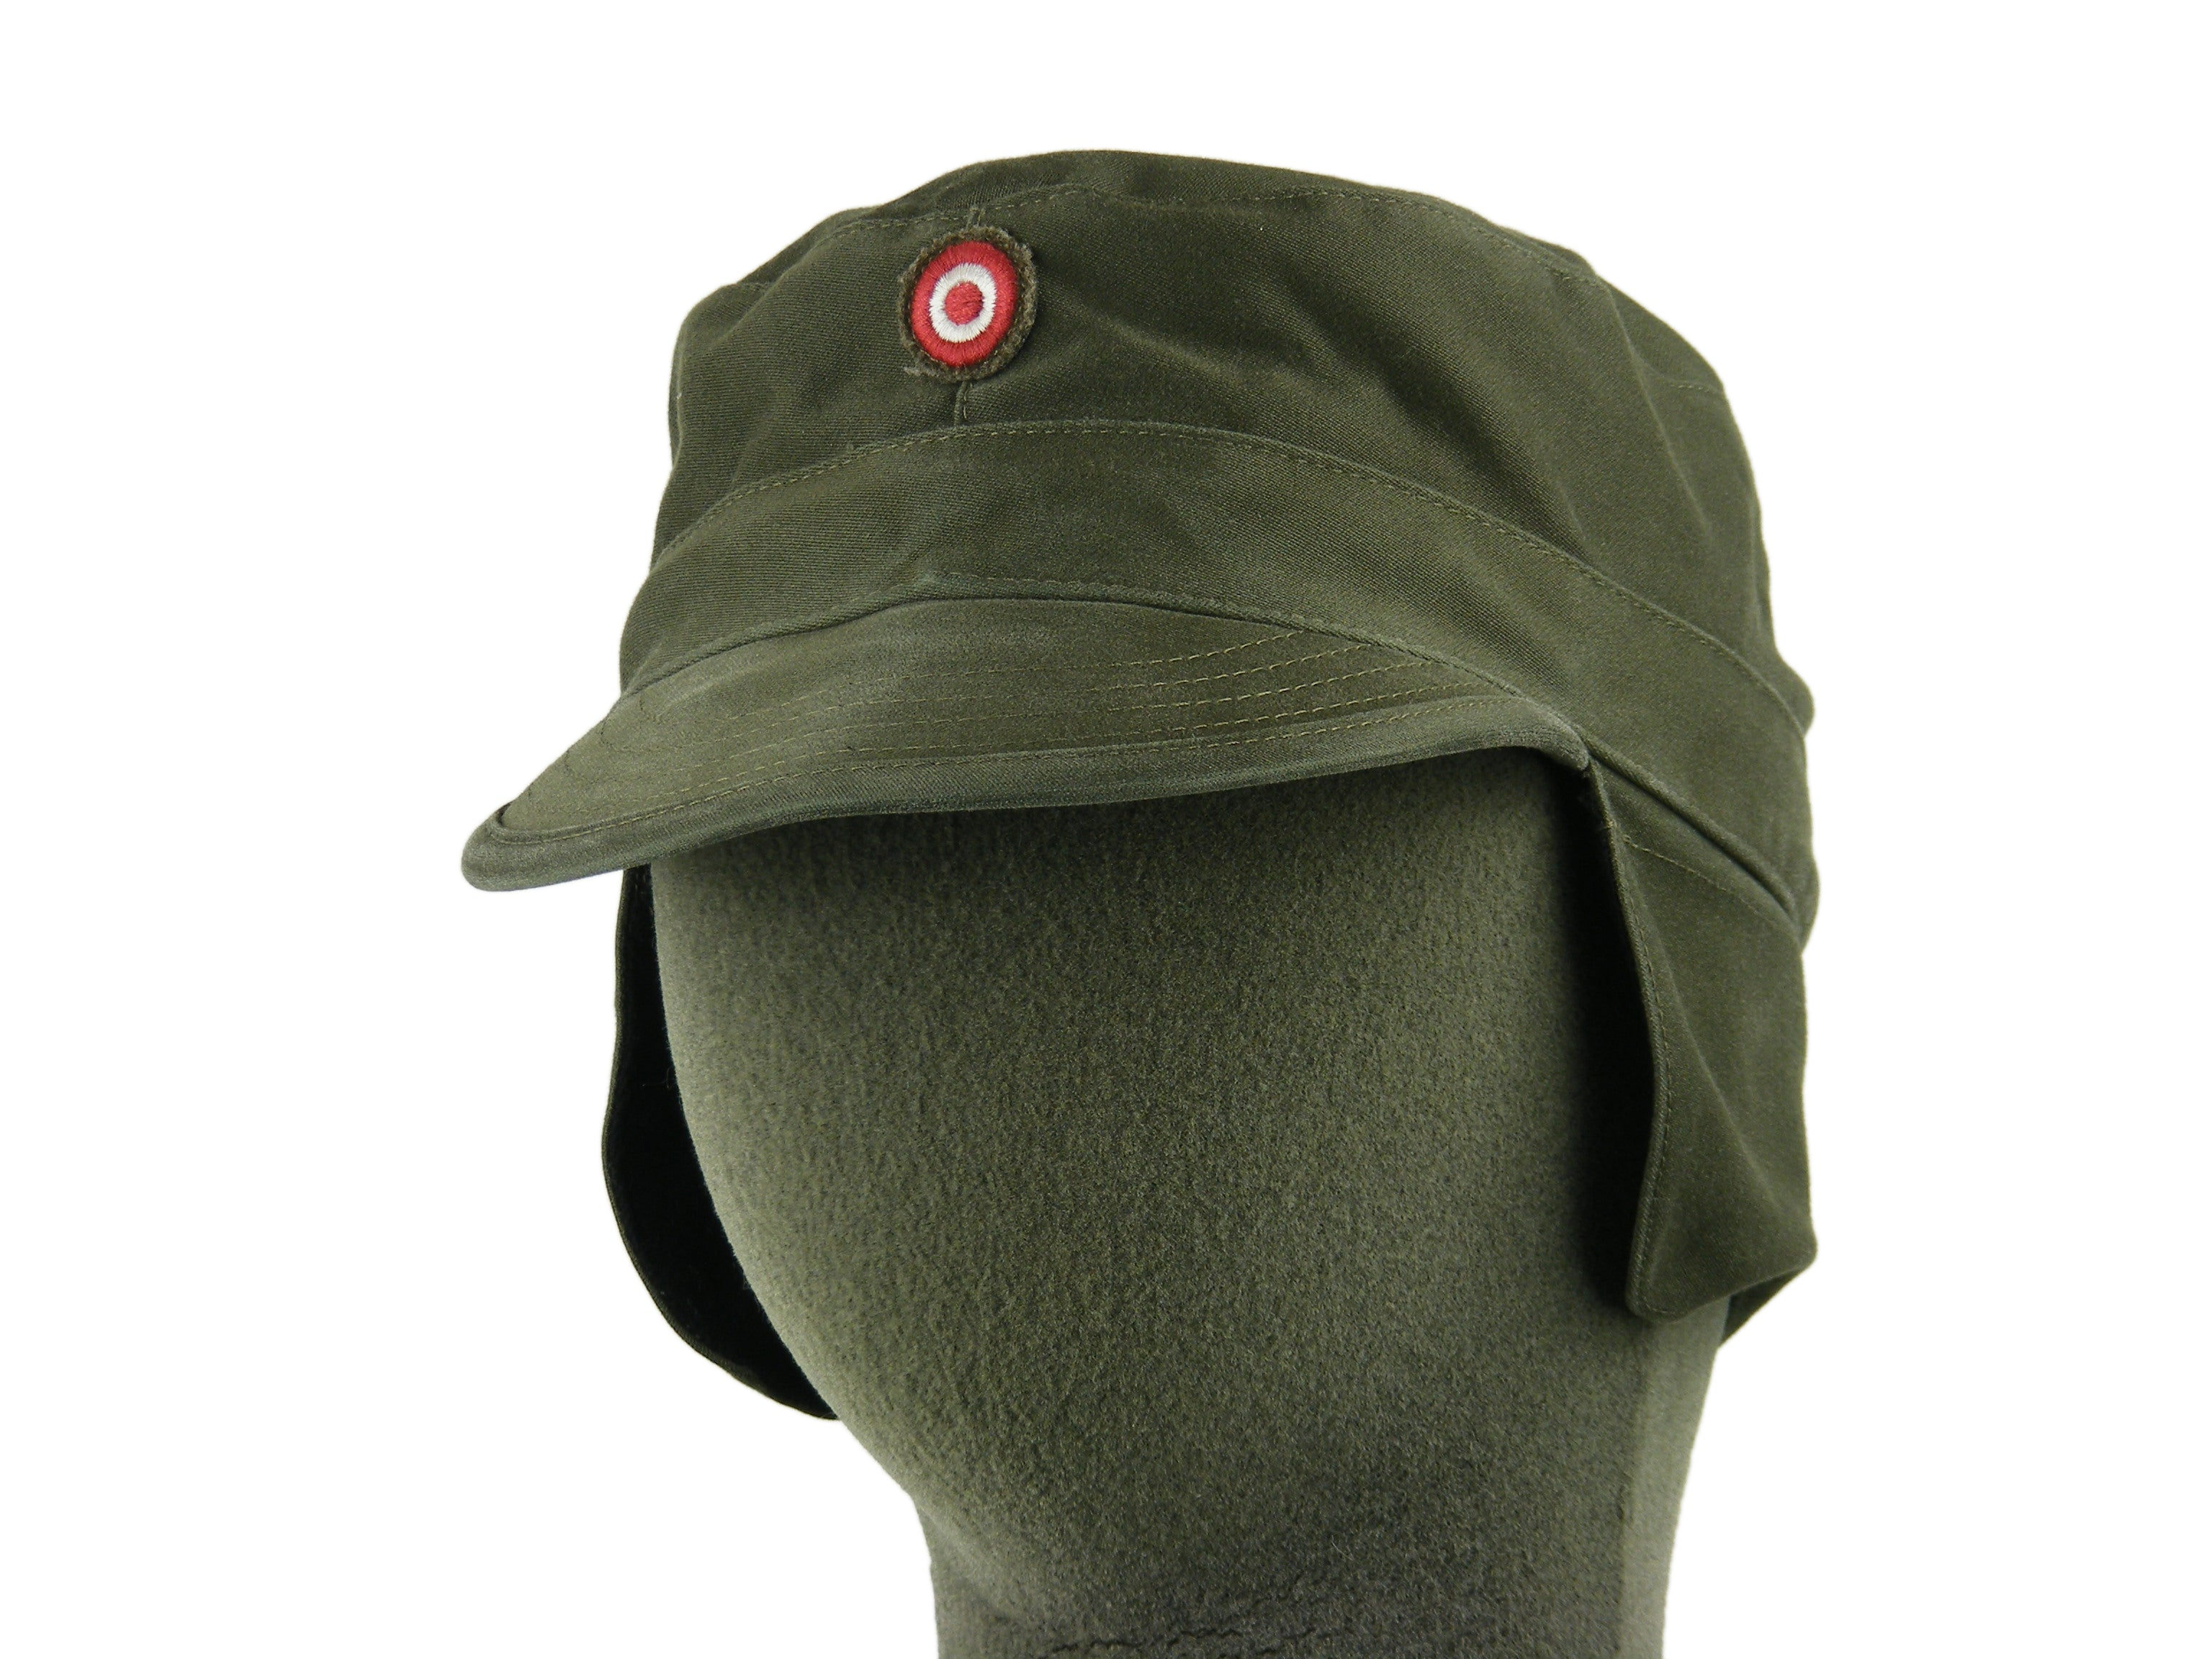 Austrian Olive Green Fatigue cap with neck shield